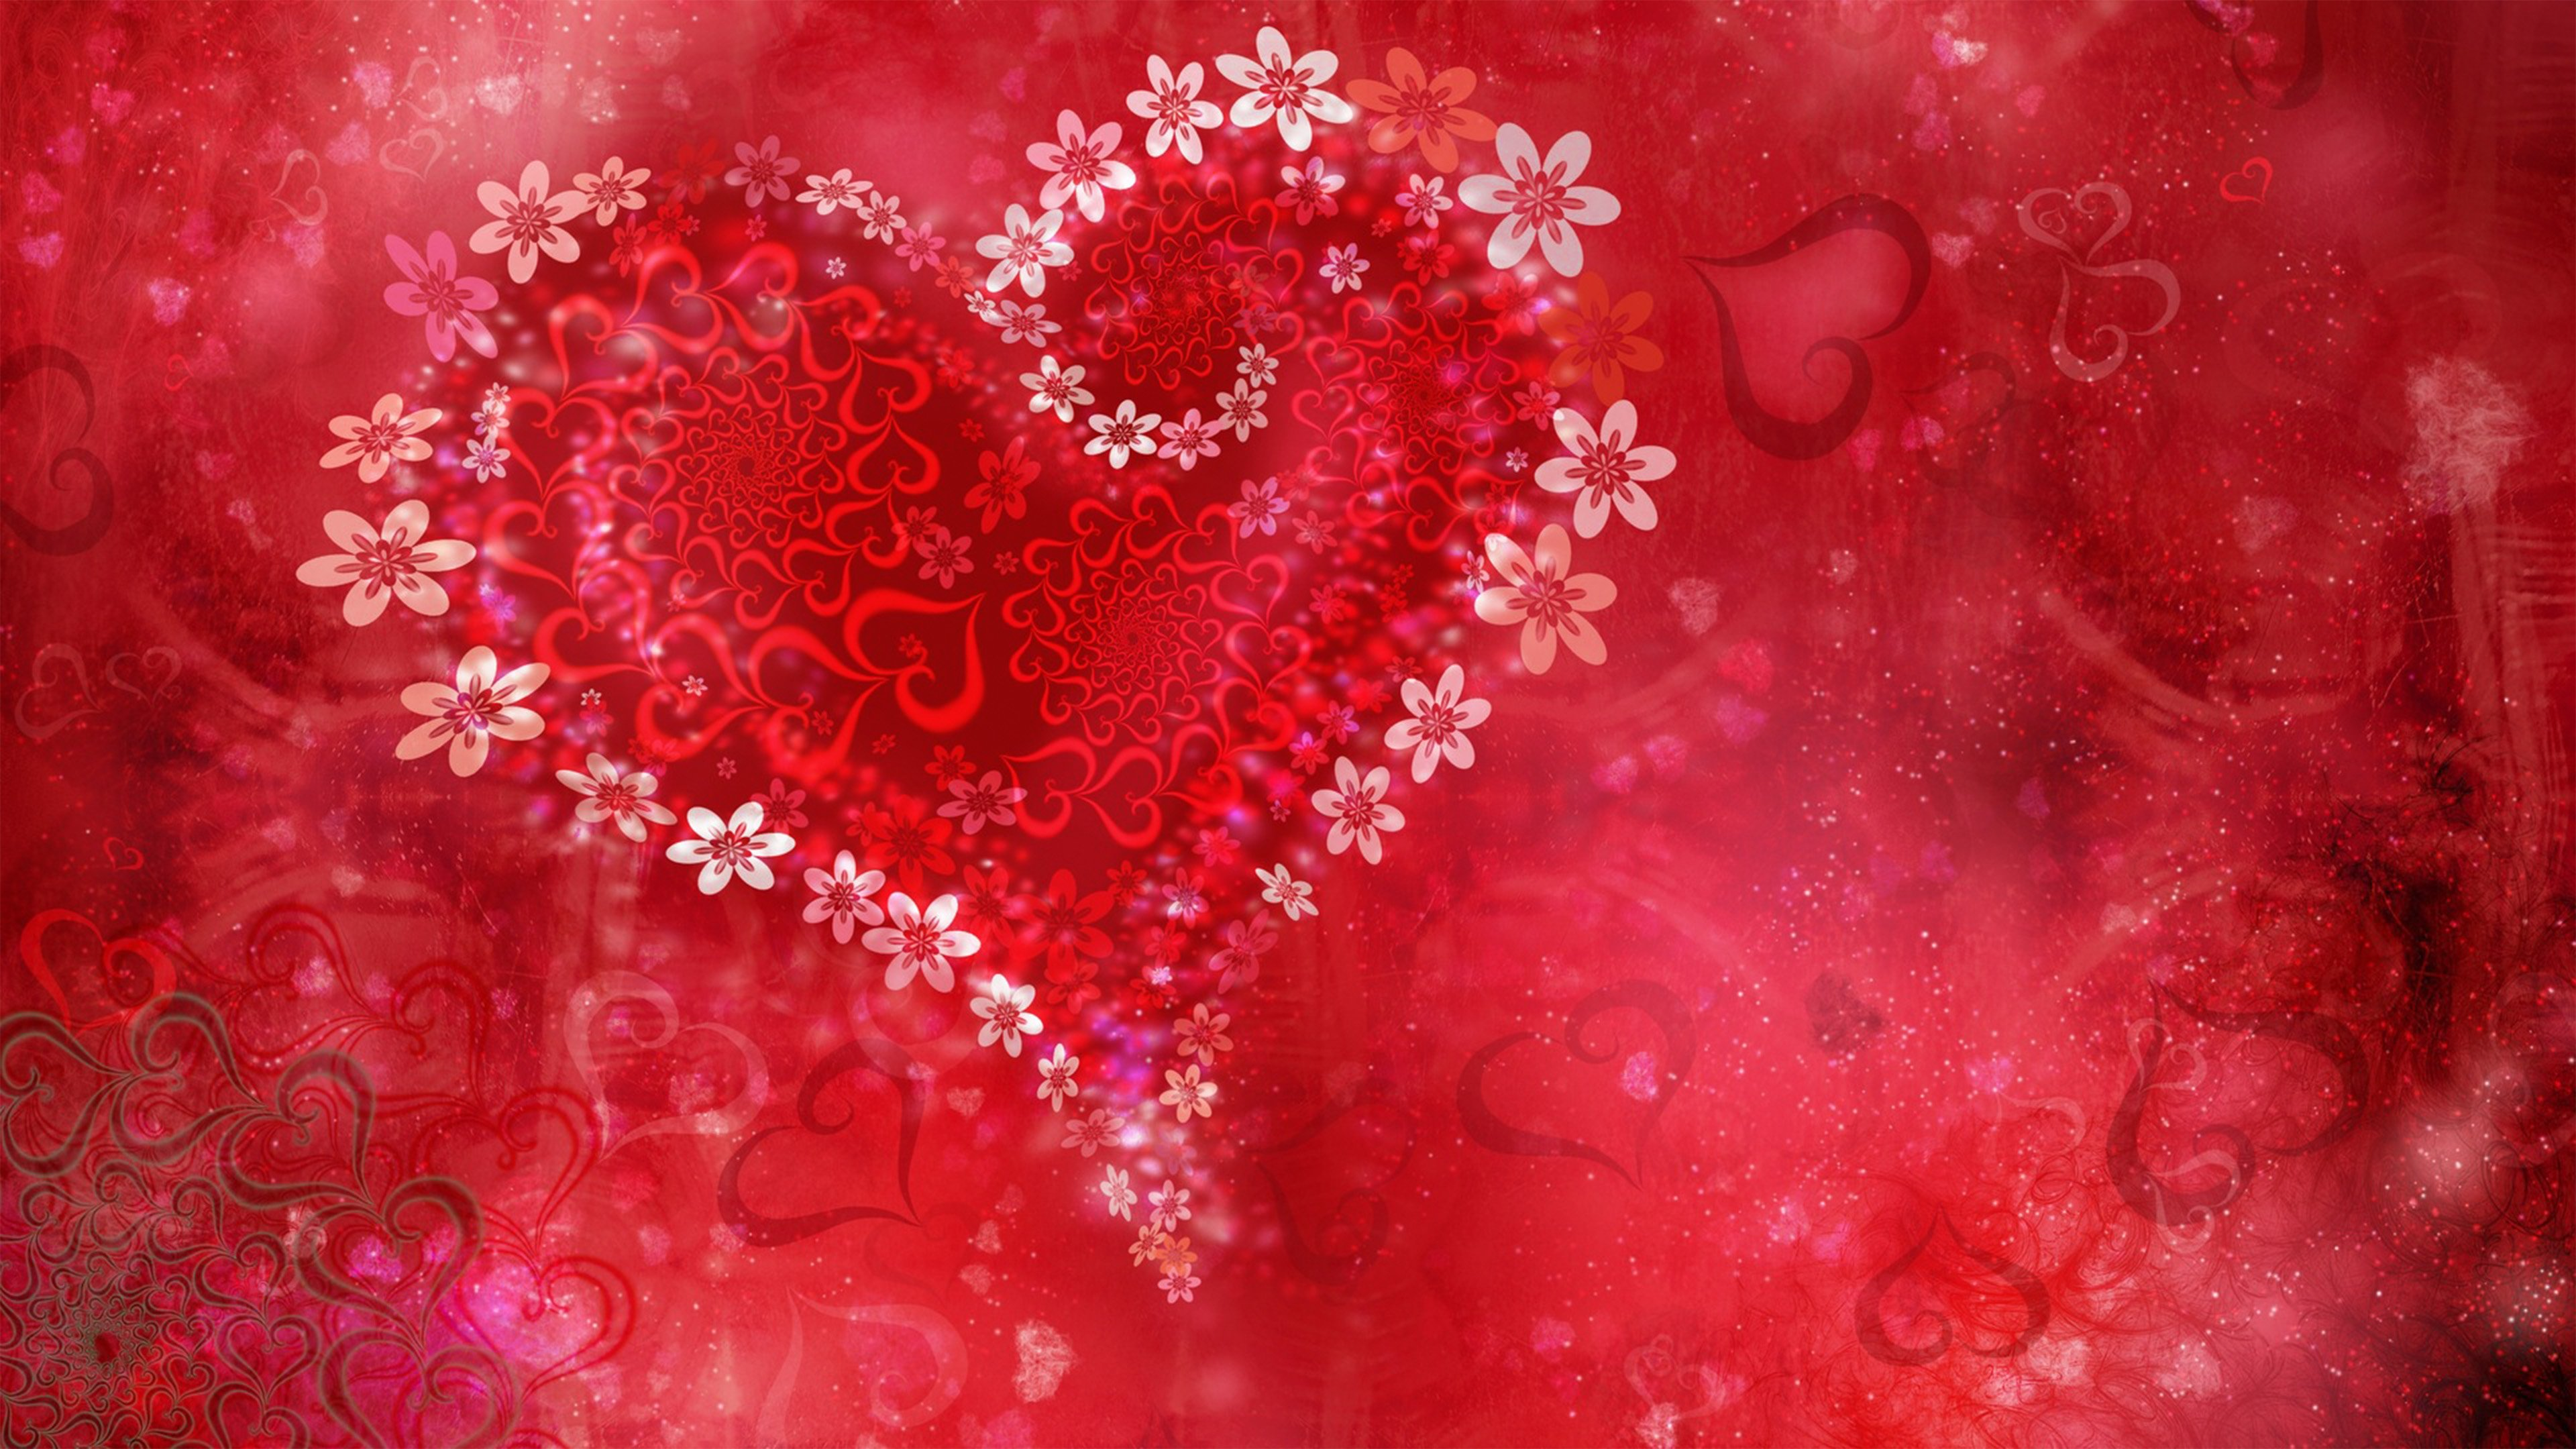 Valentine day heart 4k hd love 4k wallpapers images backgrounds valentine day heart 4k voltagebd Images